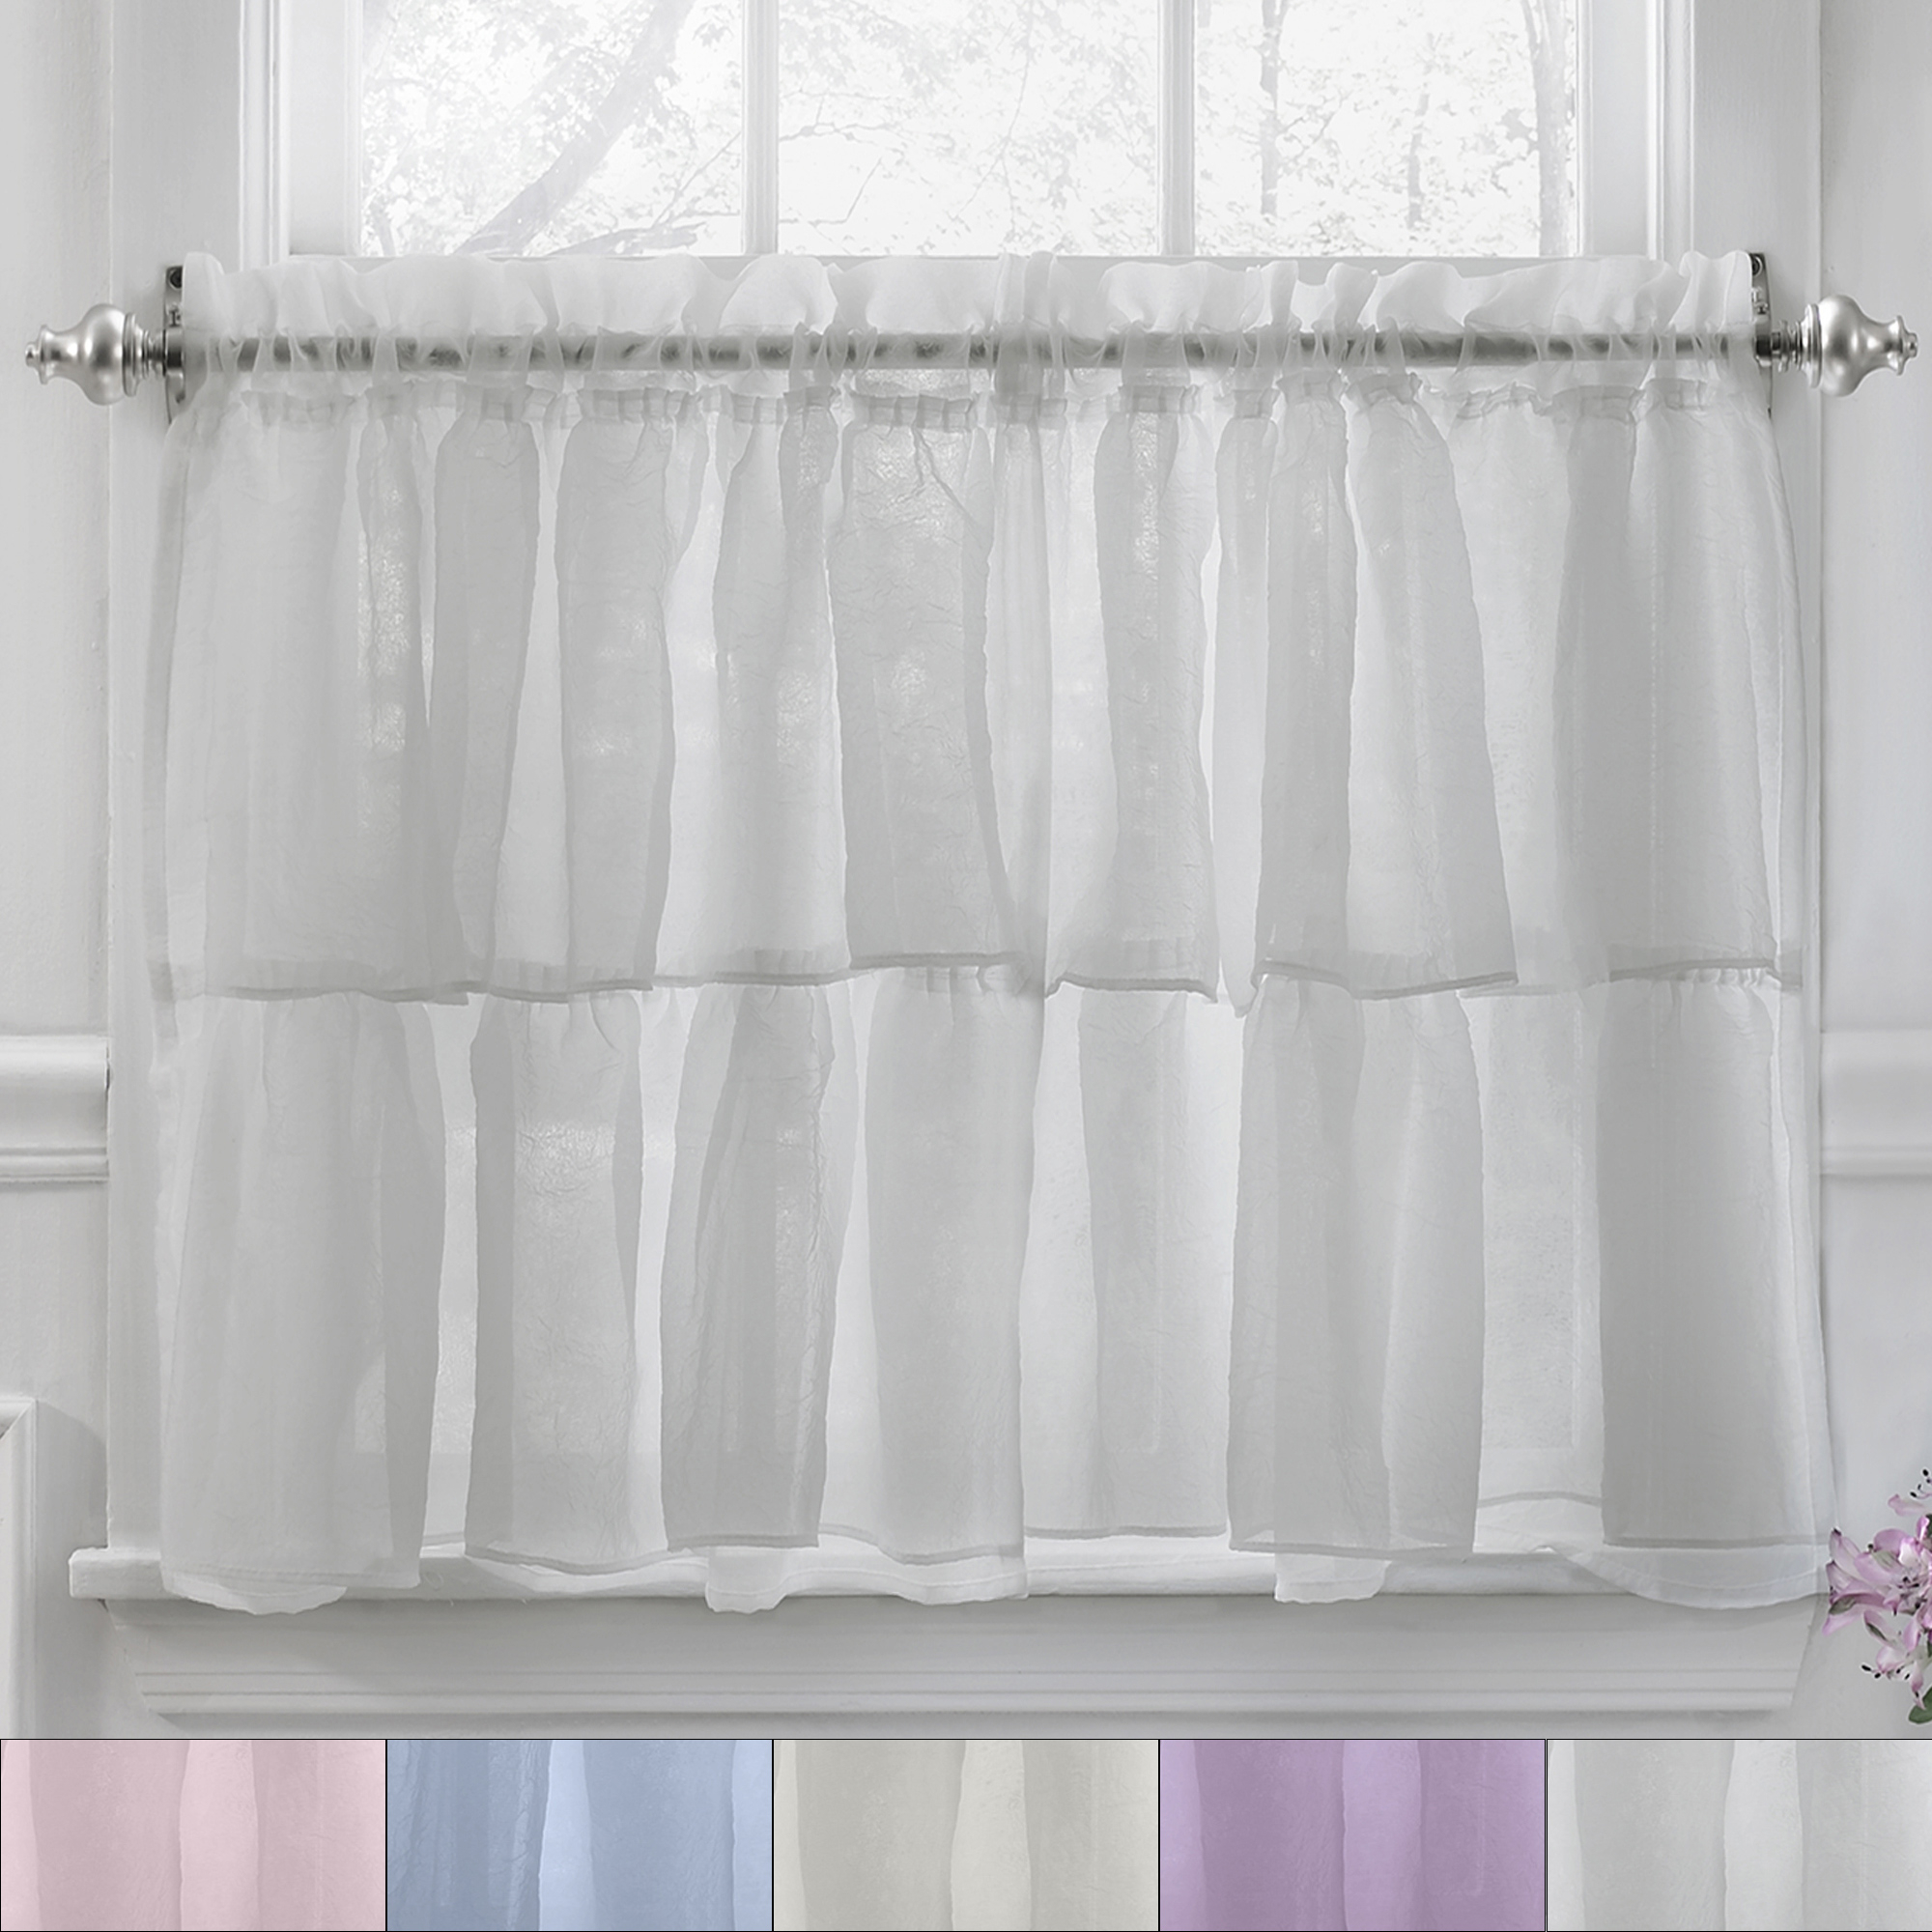 "Details About Gypsy Crushed Voile Ruffle Kitchen Window Curtain 36"" Tier Pair Within Widely Used Elegant Crushed Voile Ruffle Window Curtain Pieces (View 2 of 20)"